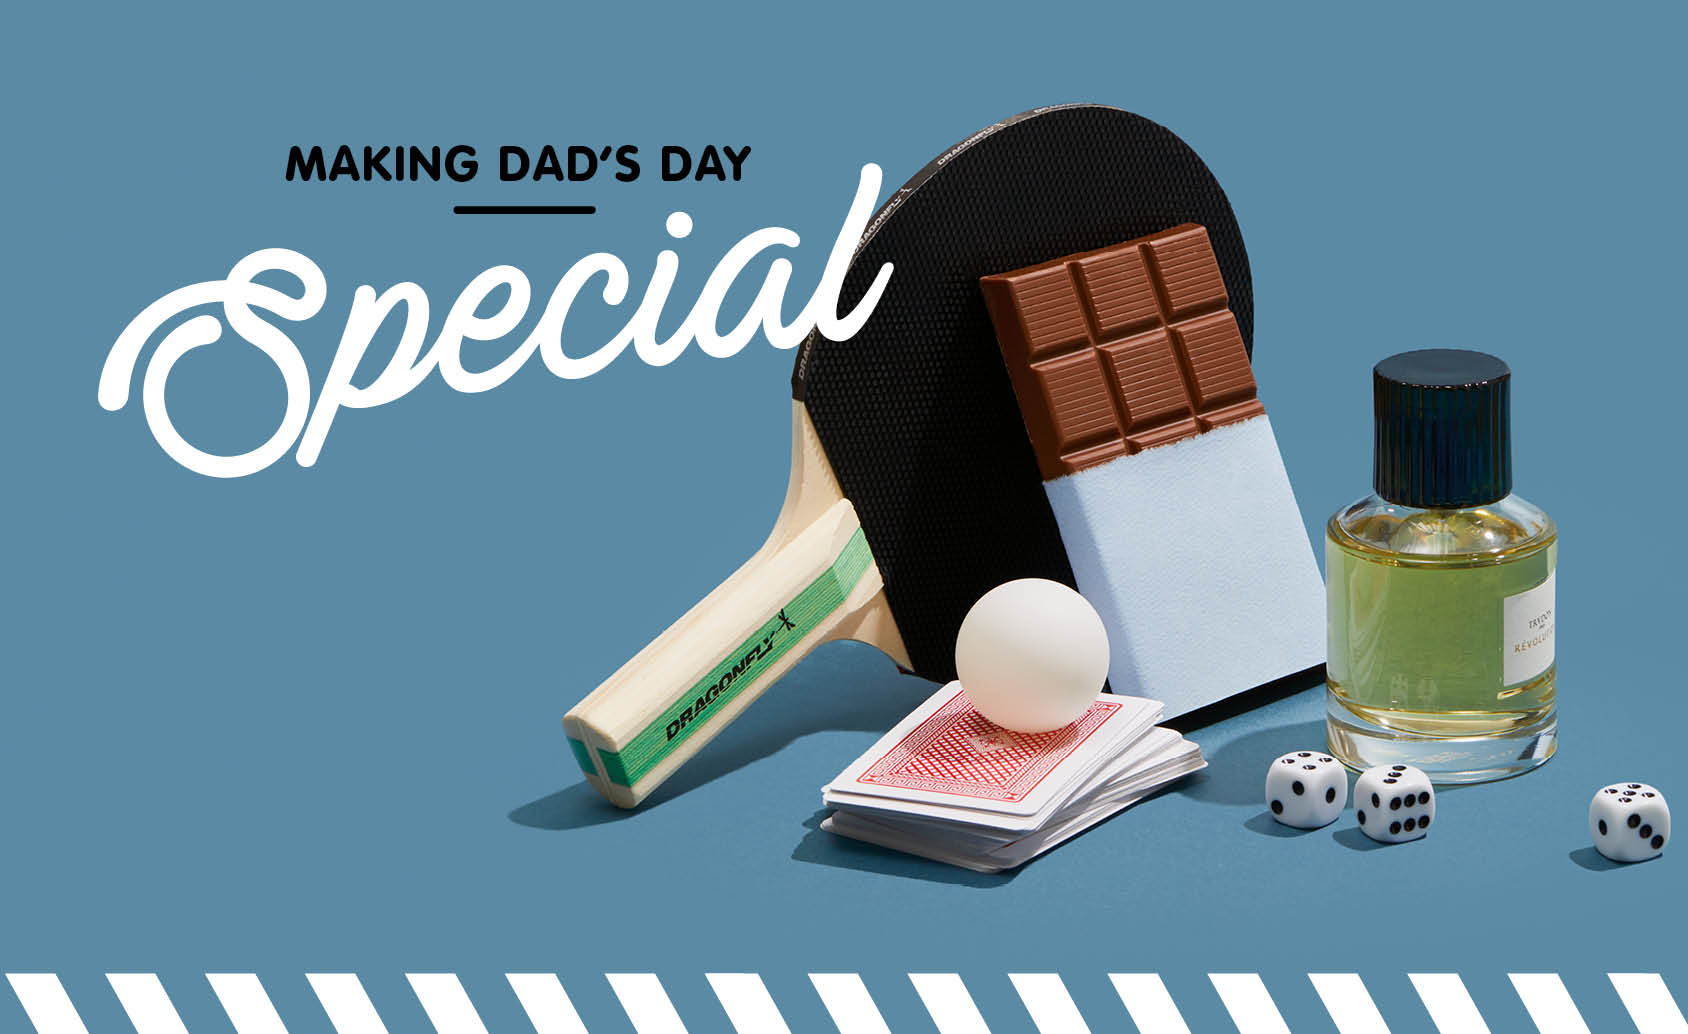 CH4891_Charter Hall_National_Fathers Day Creative_Web Tiles_844x517px